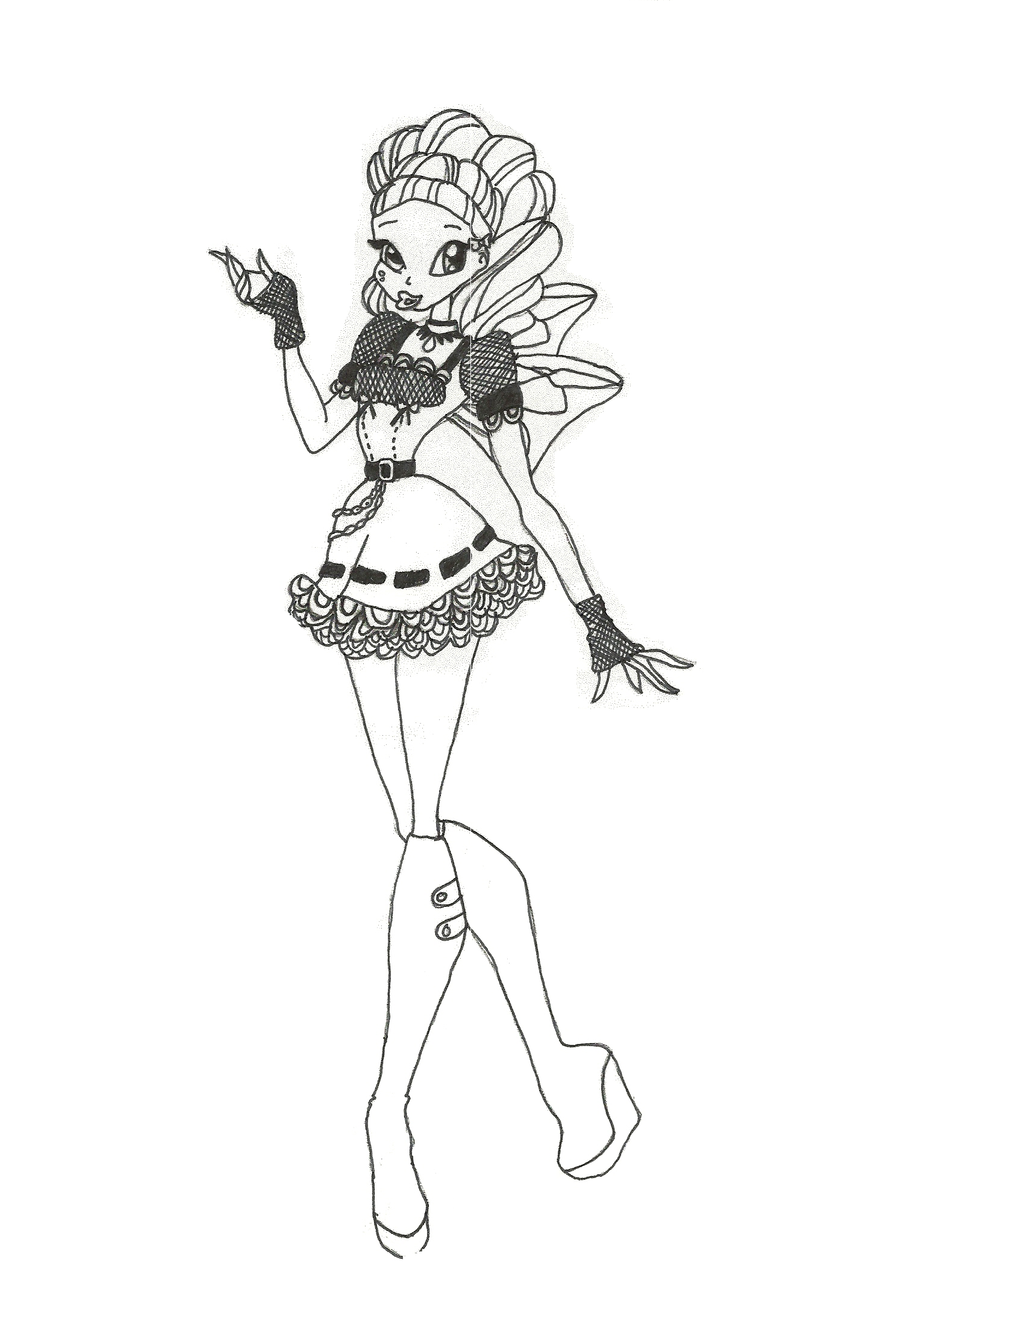 Winx Club Hallowinx Layla coloring page by timefairy237 on DeviantArt